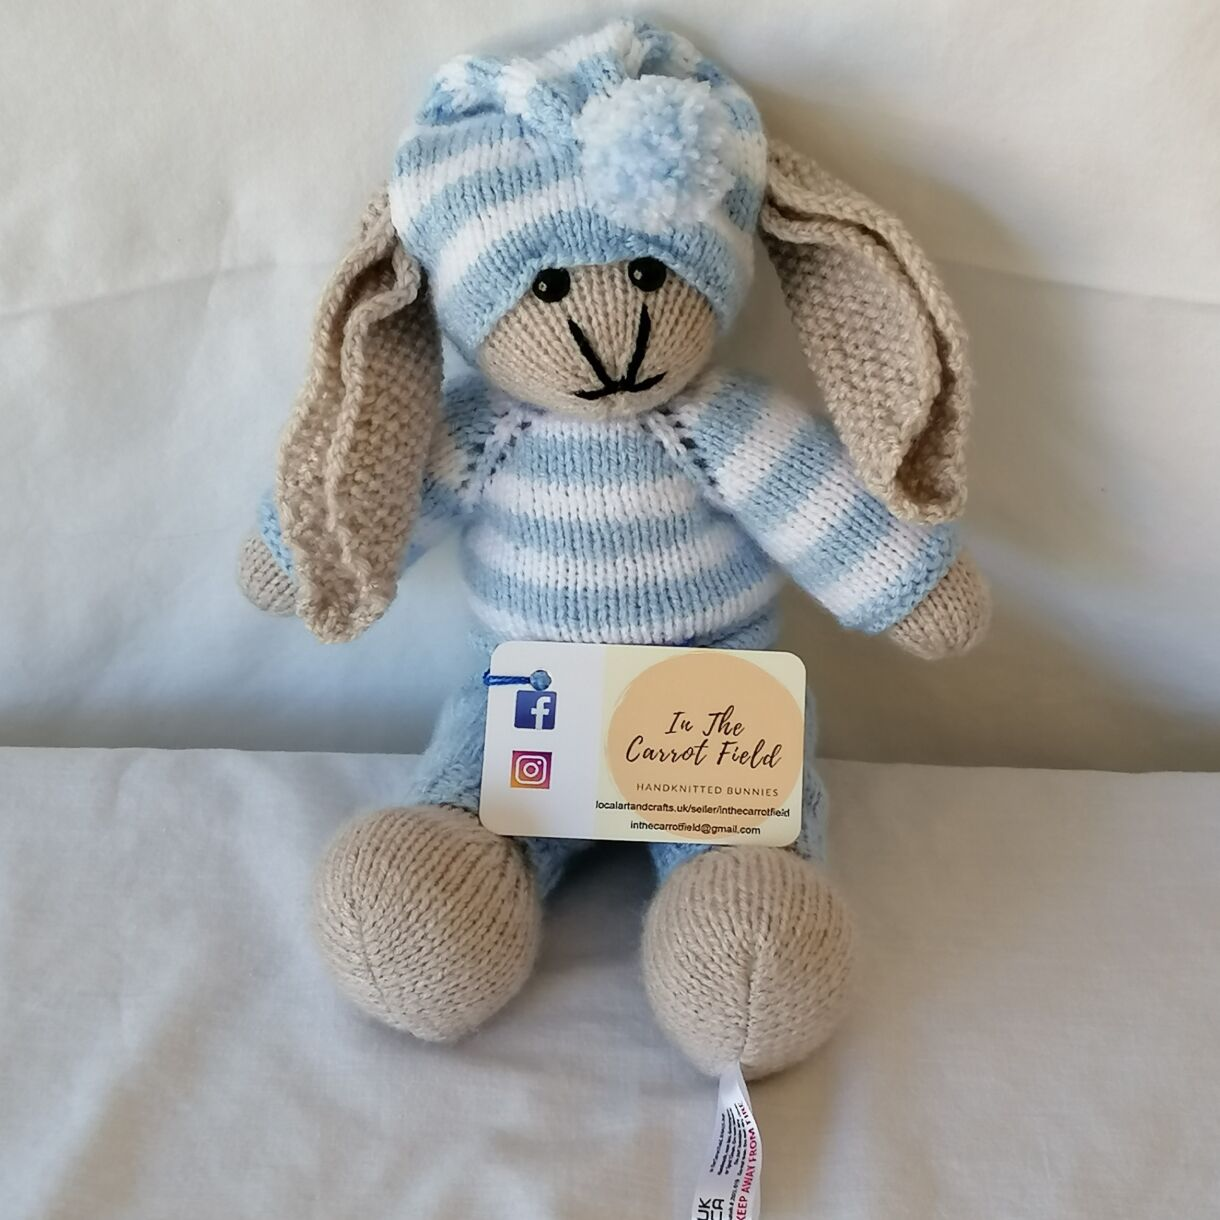 Hand Knitted Snuggle Bunny Soft Toy,